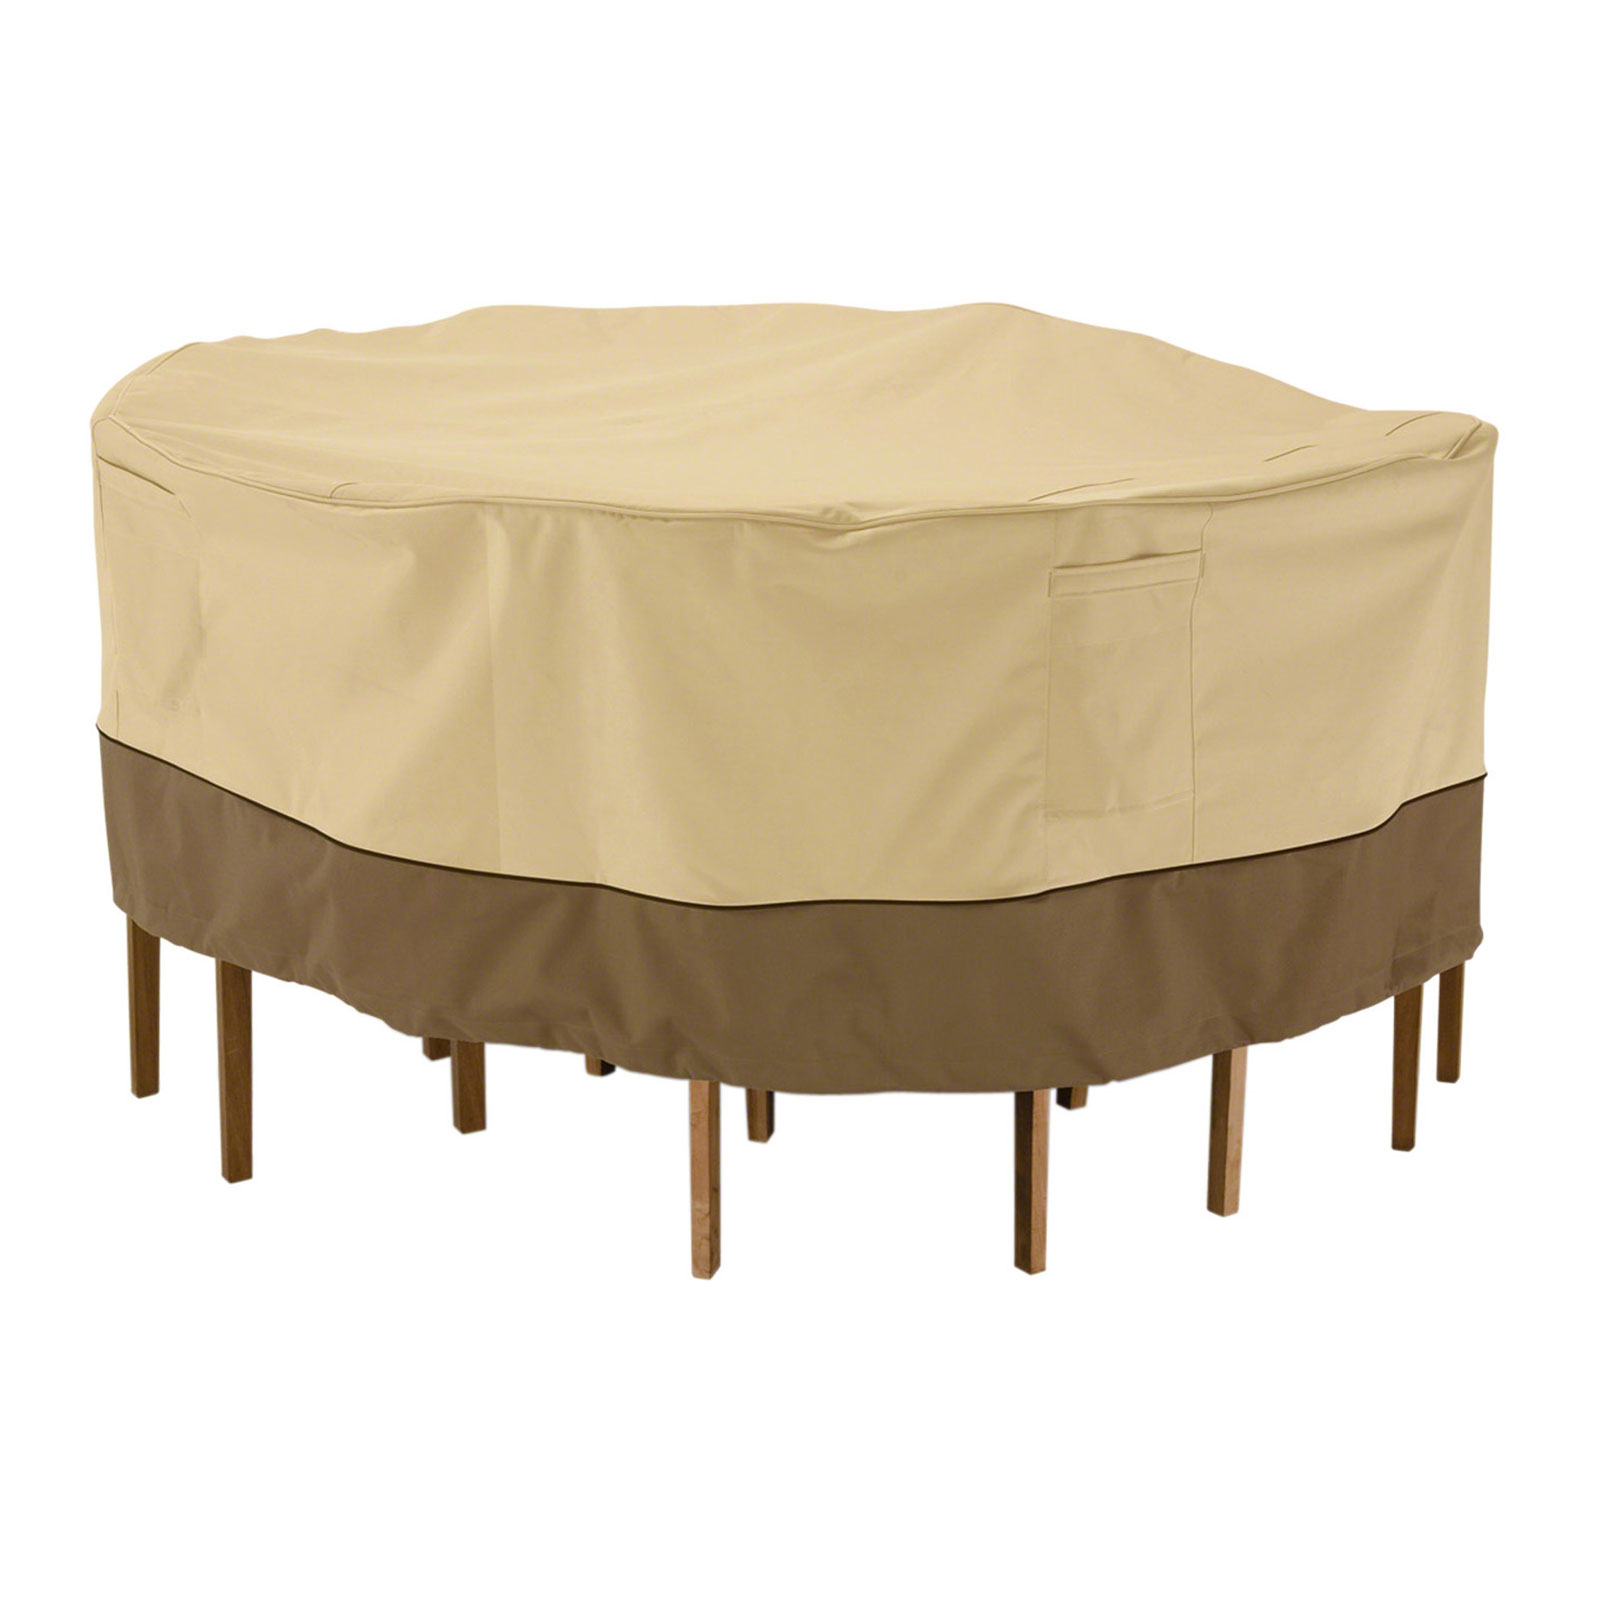 Patio Table Cover Round Veranda in Patio Furniture Covers